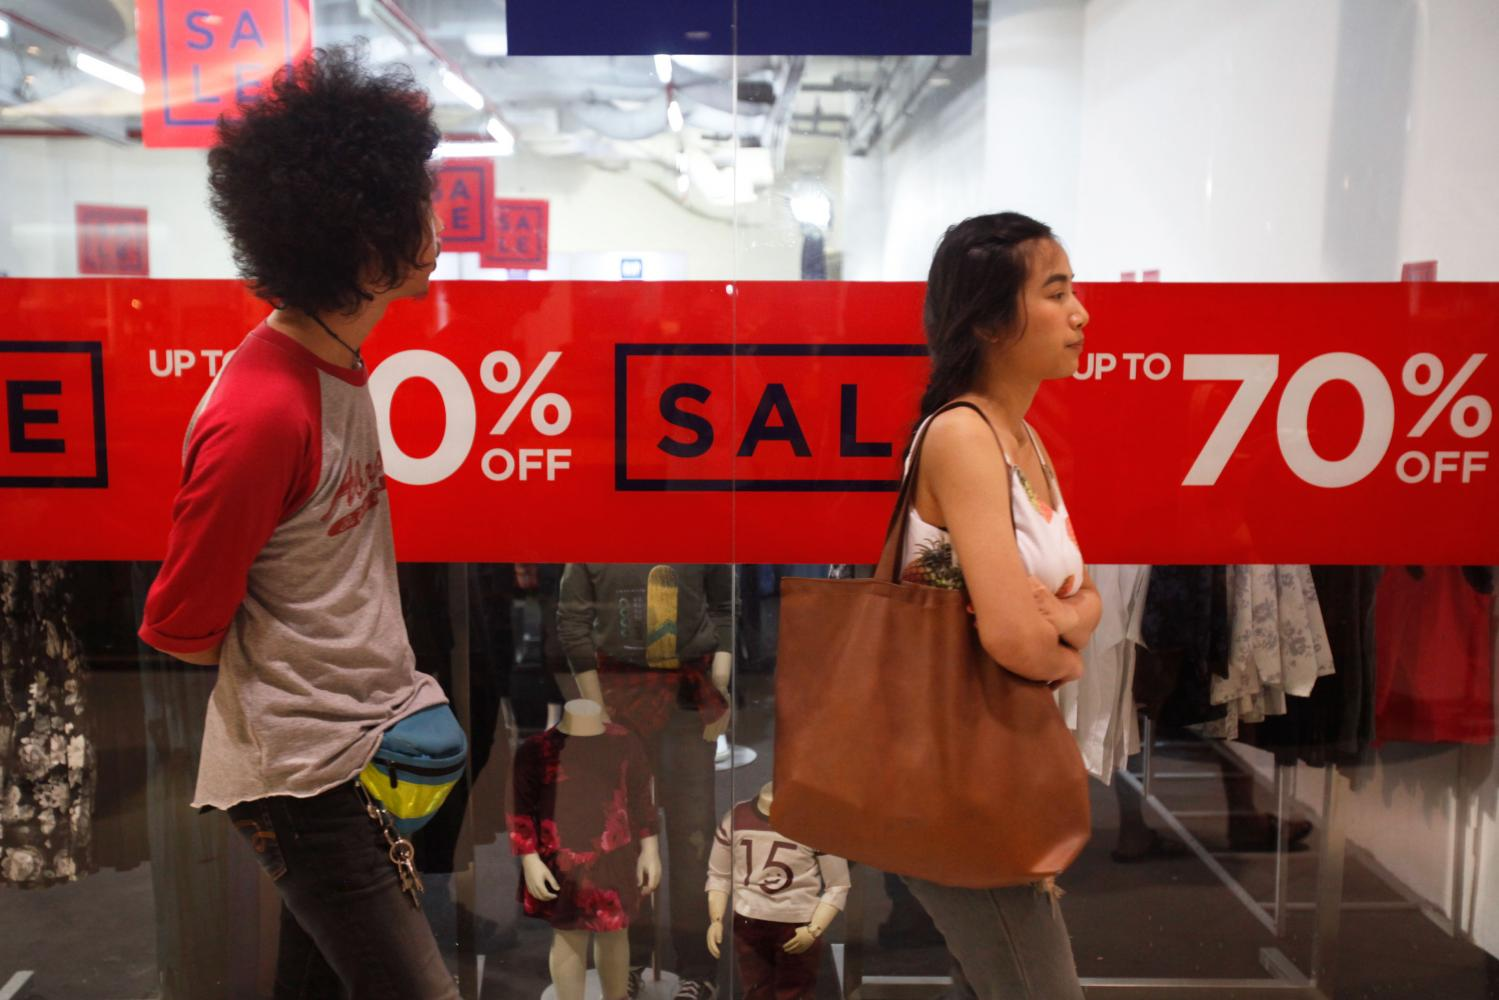 Shoppers walk past a sign advertising sales in a Bangkok shopping mall. Retailers are ramping up campaigns for the festive season.(Photo by Jiraporn Kuhakan)